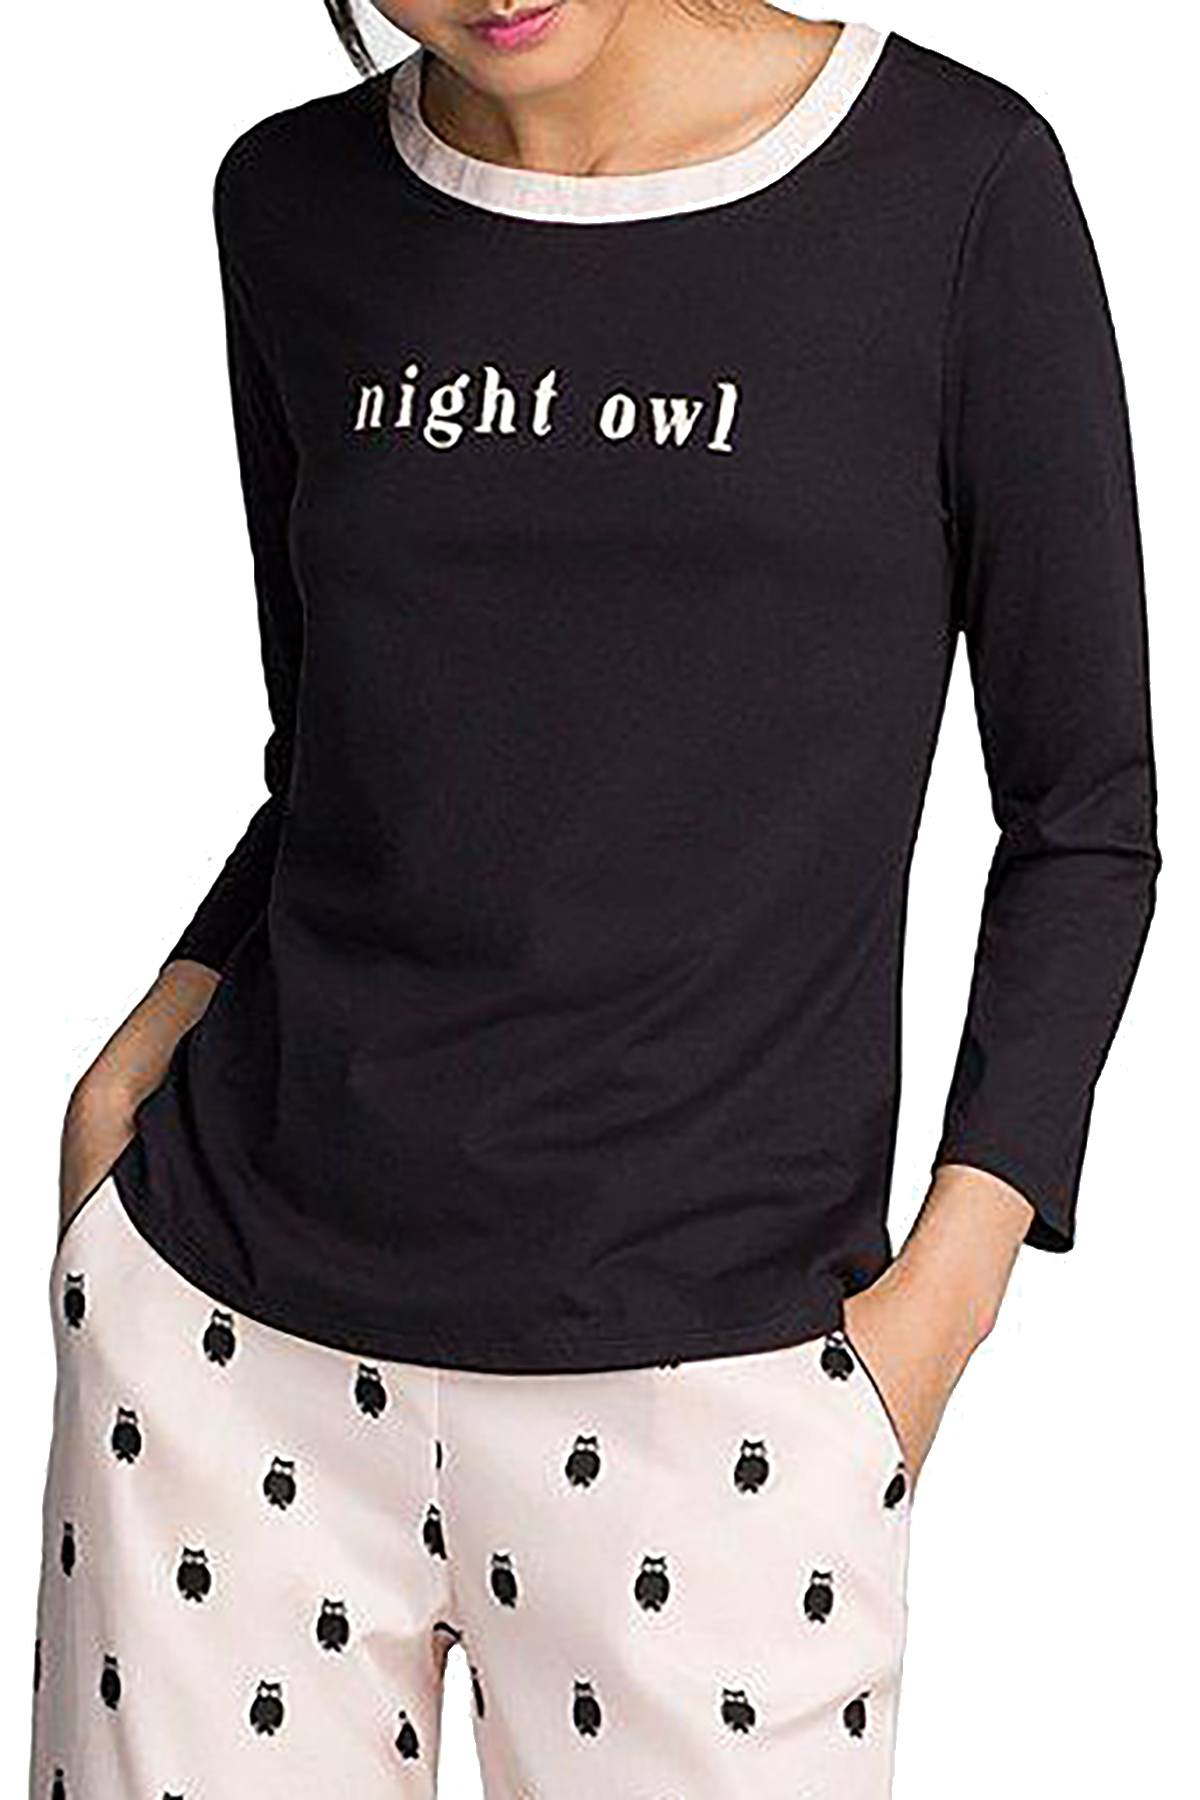 Kate Spade New York Black Night-Owl Long-Sleeve Lounge Tee